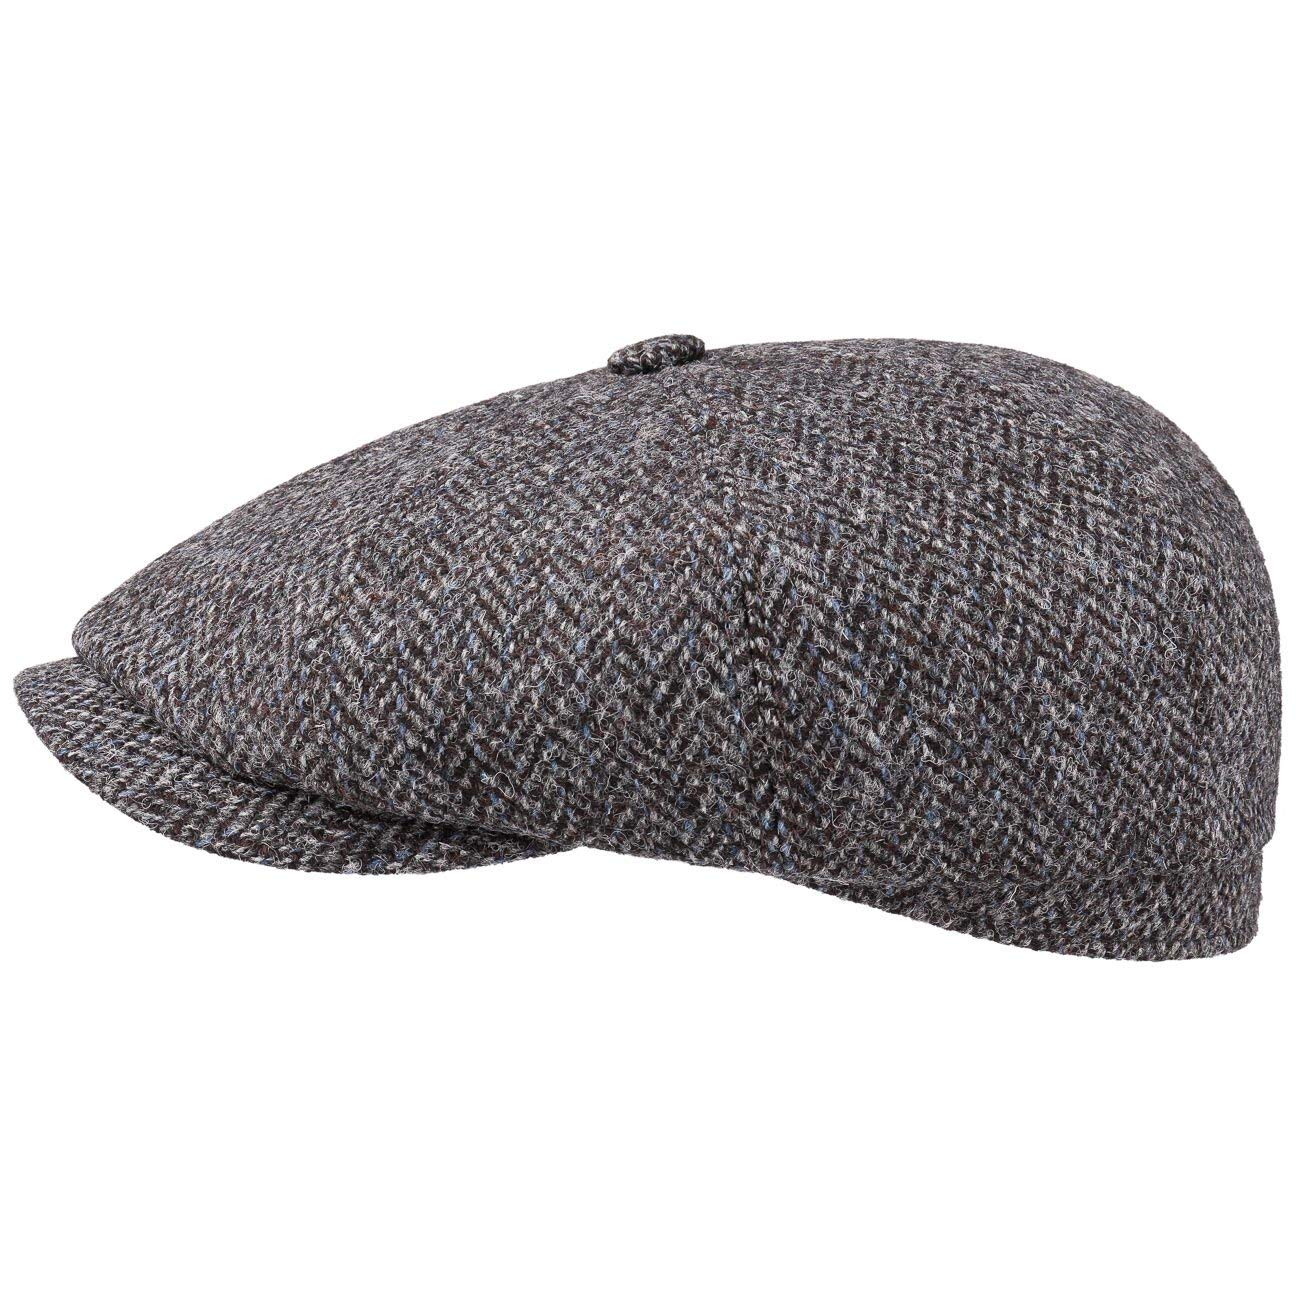 Stetson Gorra Hatteras Tweed Newsy Hombre - Made in Germany Gorros ...